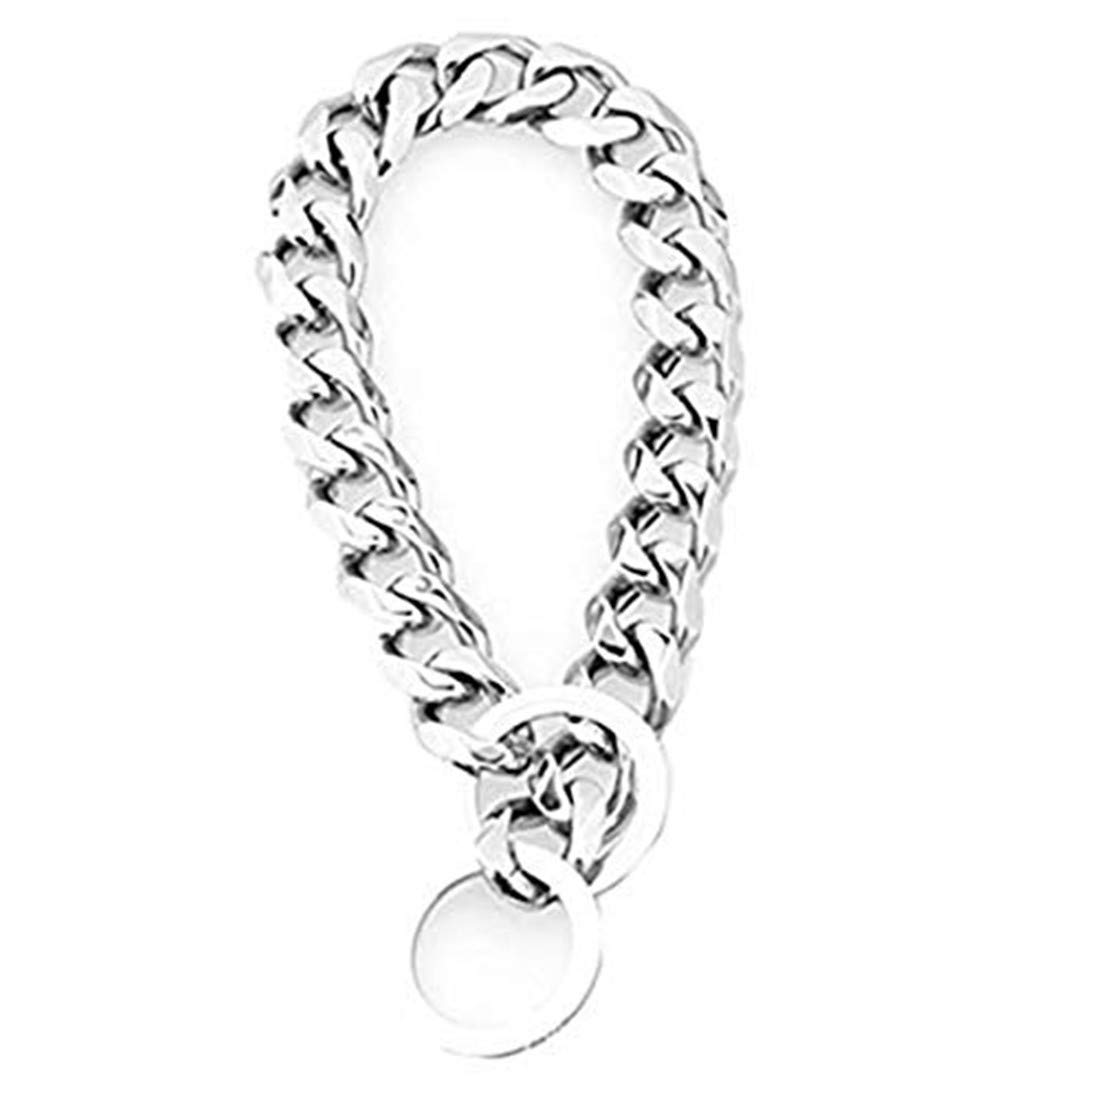 Heavy Metal 19mm Duty Solid Stainless Steel Dog Choke Chain Collar Pet Necklace for Pit Bull, Mastiff, Bulldog, Big Breeds 12 Inches-34 Inches (24inch Chain(Suggest Dog Neck 20inch))